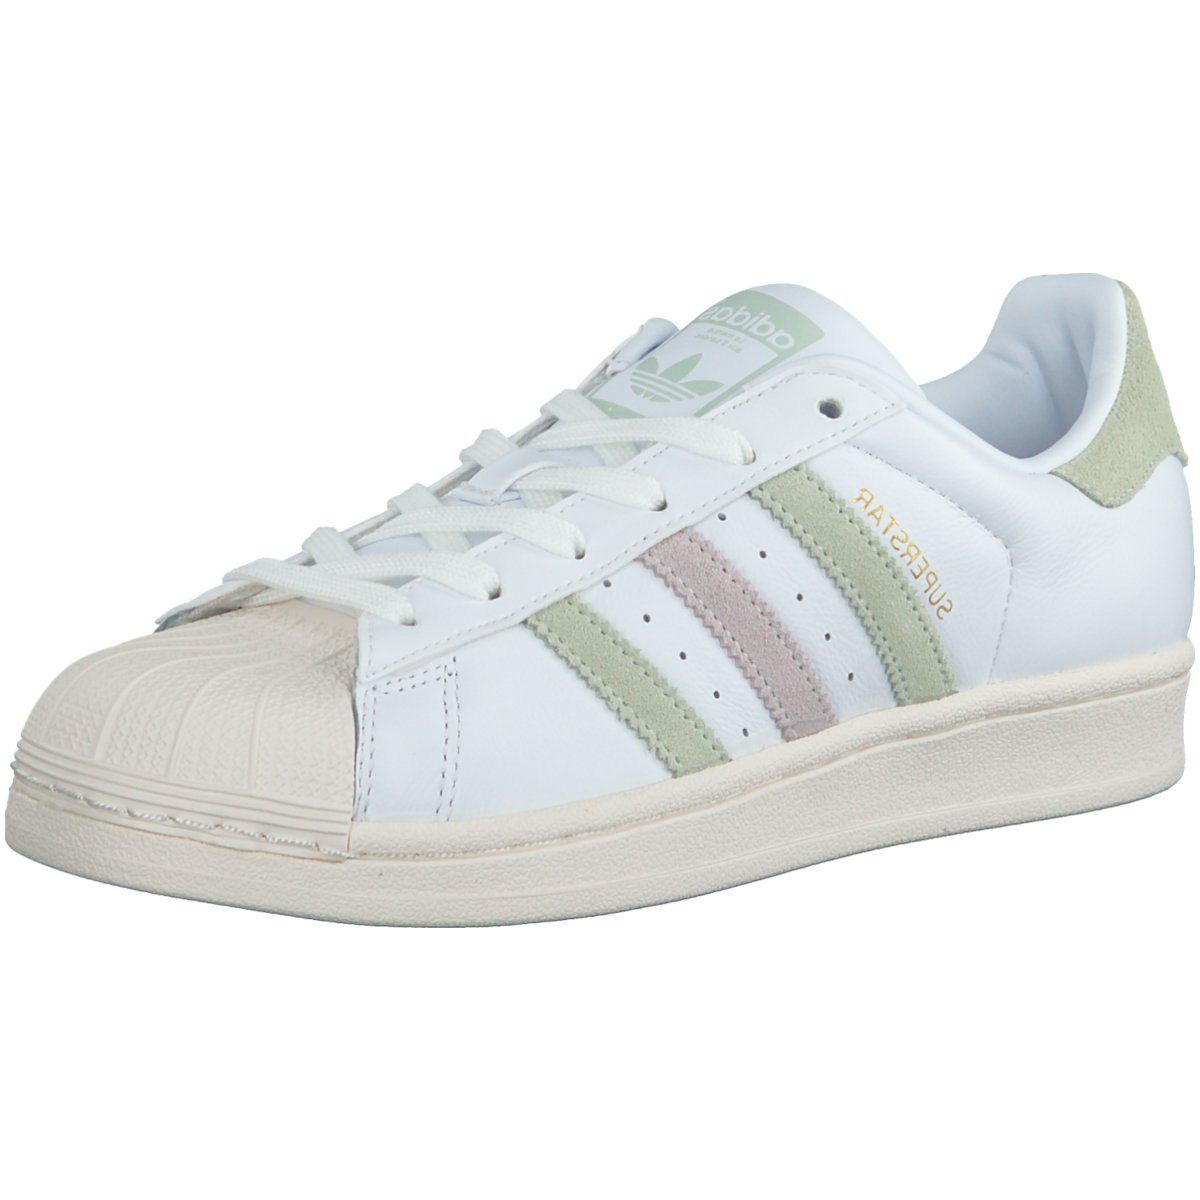 adidas original superstar schuhe damen